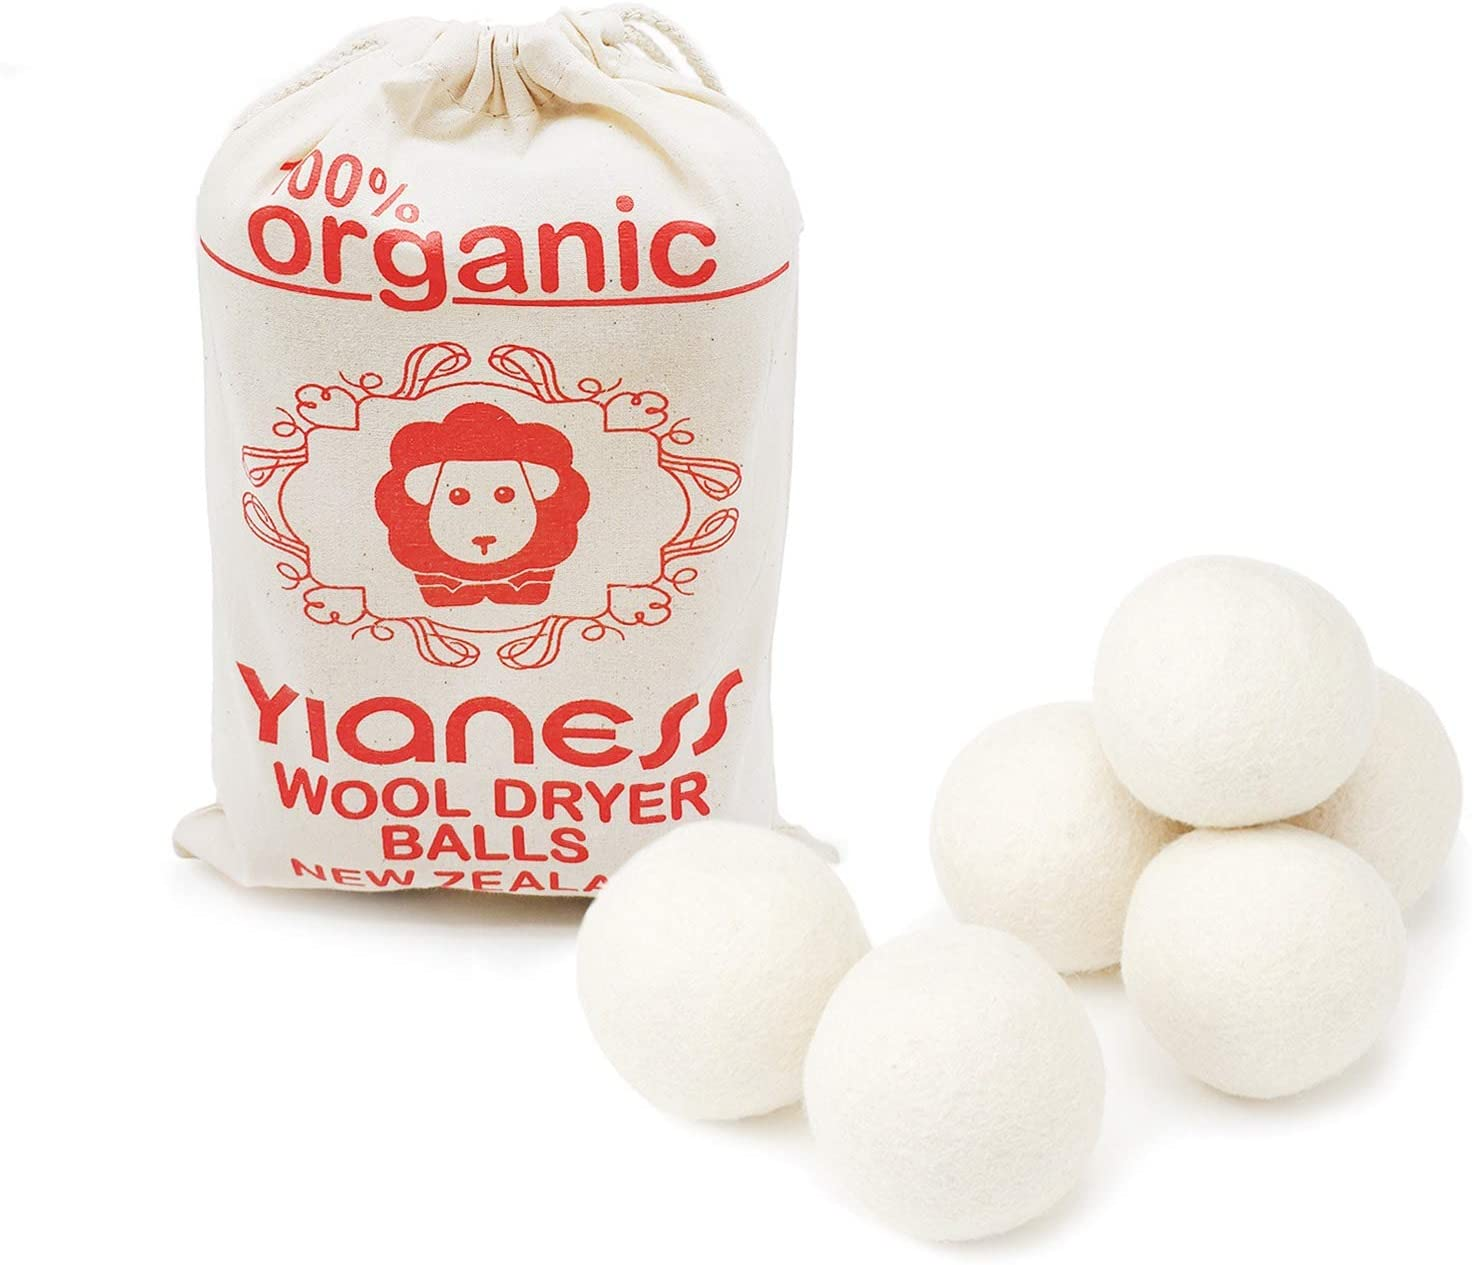 Yianess 6 Piece XL New Zealand Wool Dryer Balls Pure Non Toxic Hand Made Natural Fabric Softener